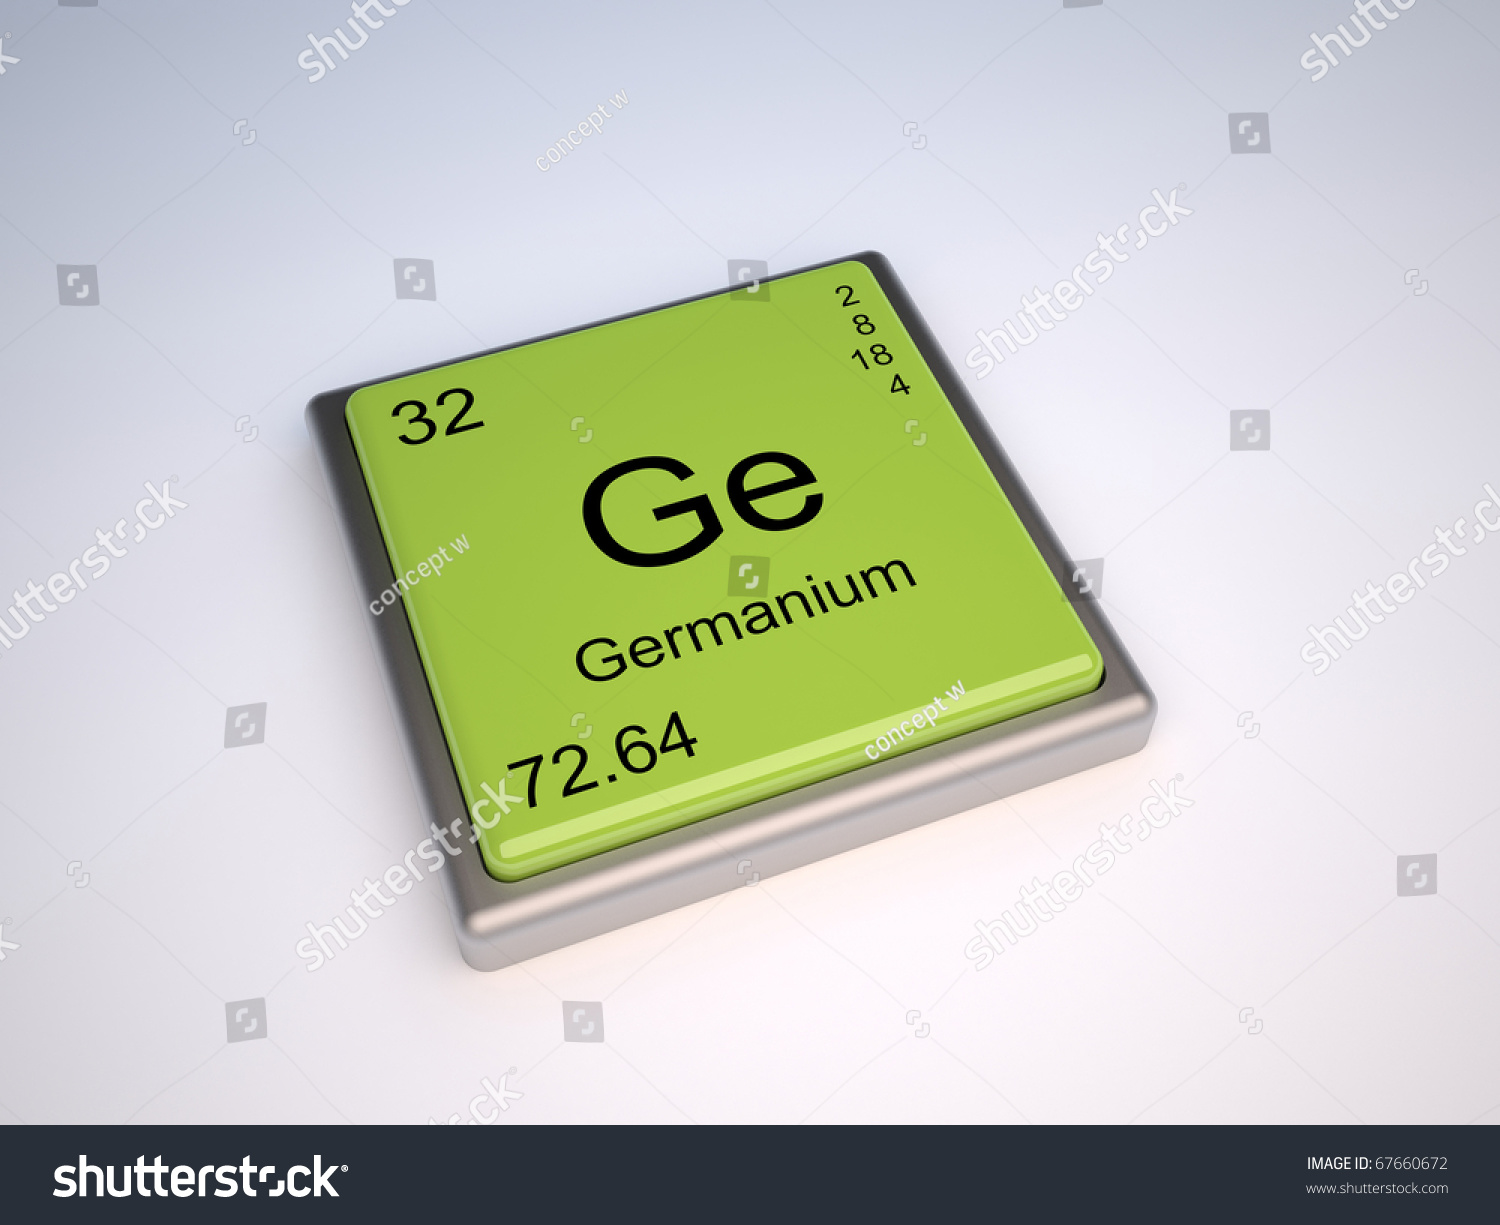 Germanium chemical element periodic table symbol stock germanium chemical element of the periodic table with symbol ge gamestrikefo Gallery